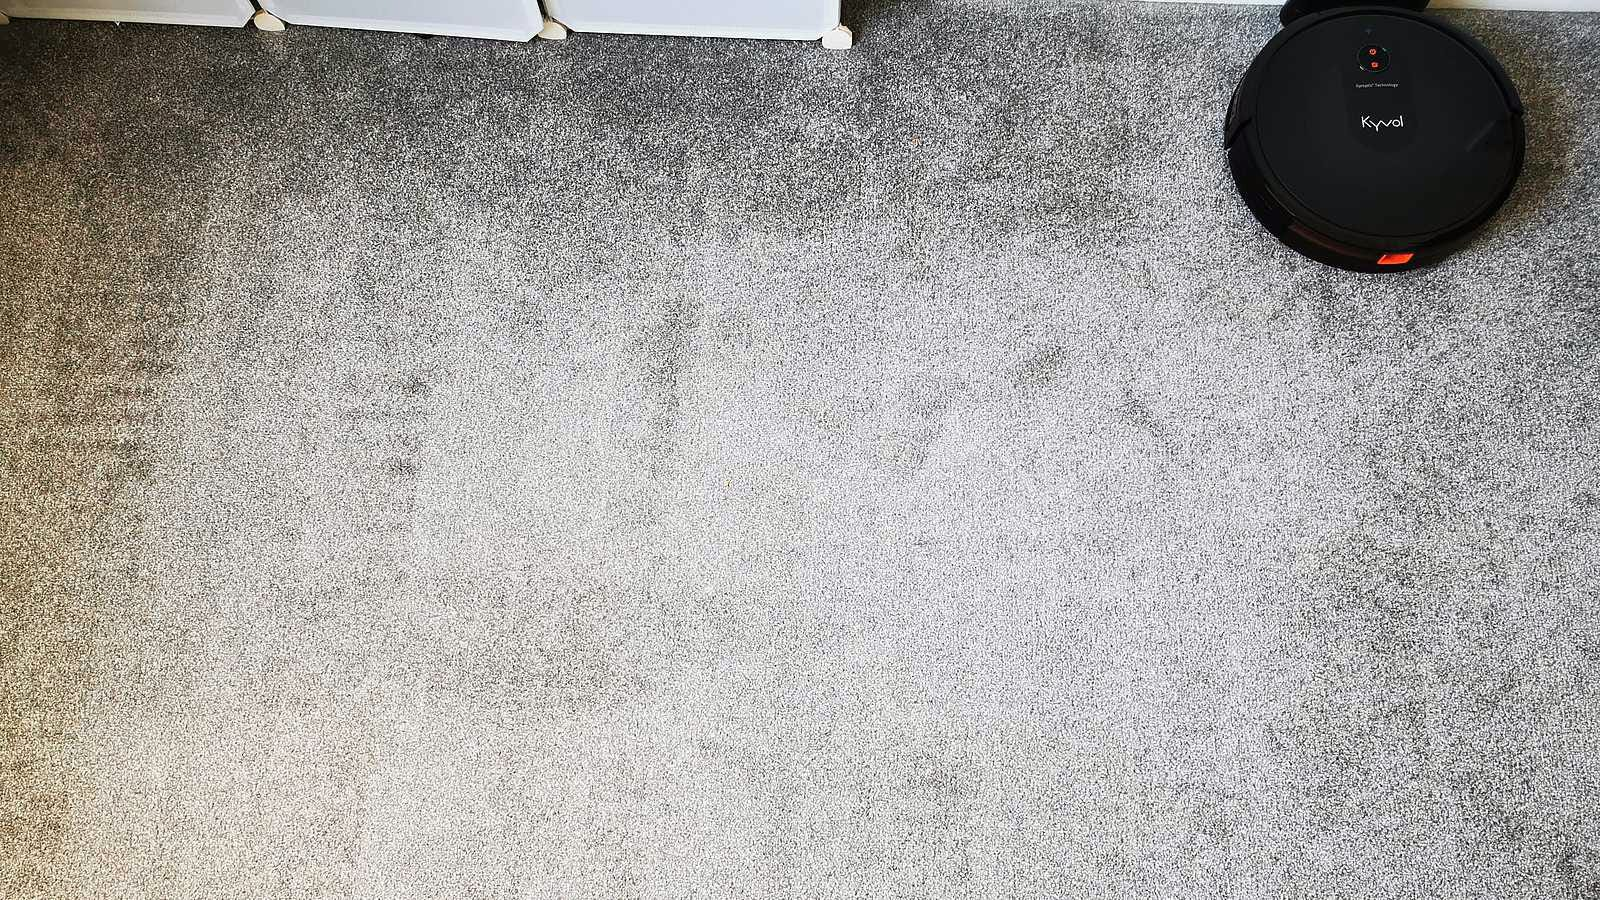 a clean carpet with the linear mode shown by the carpet pile